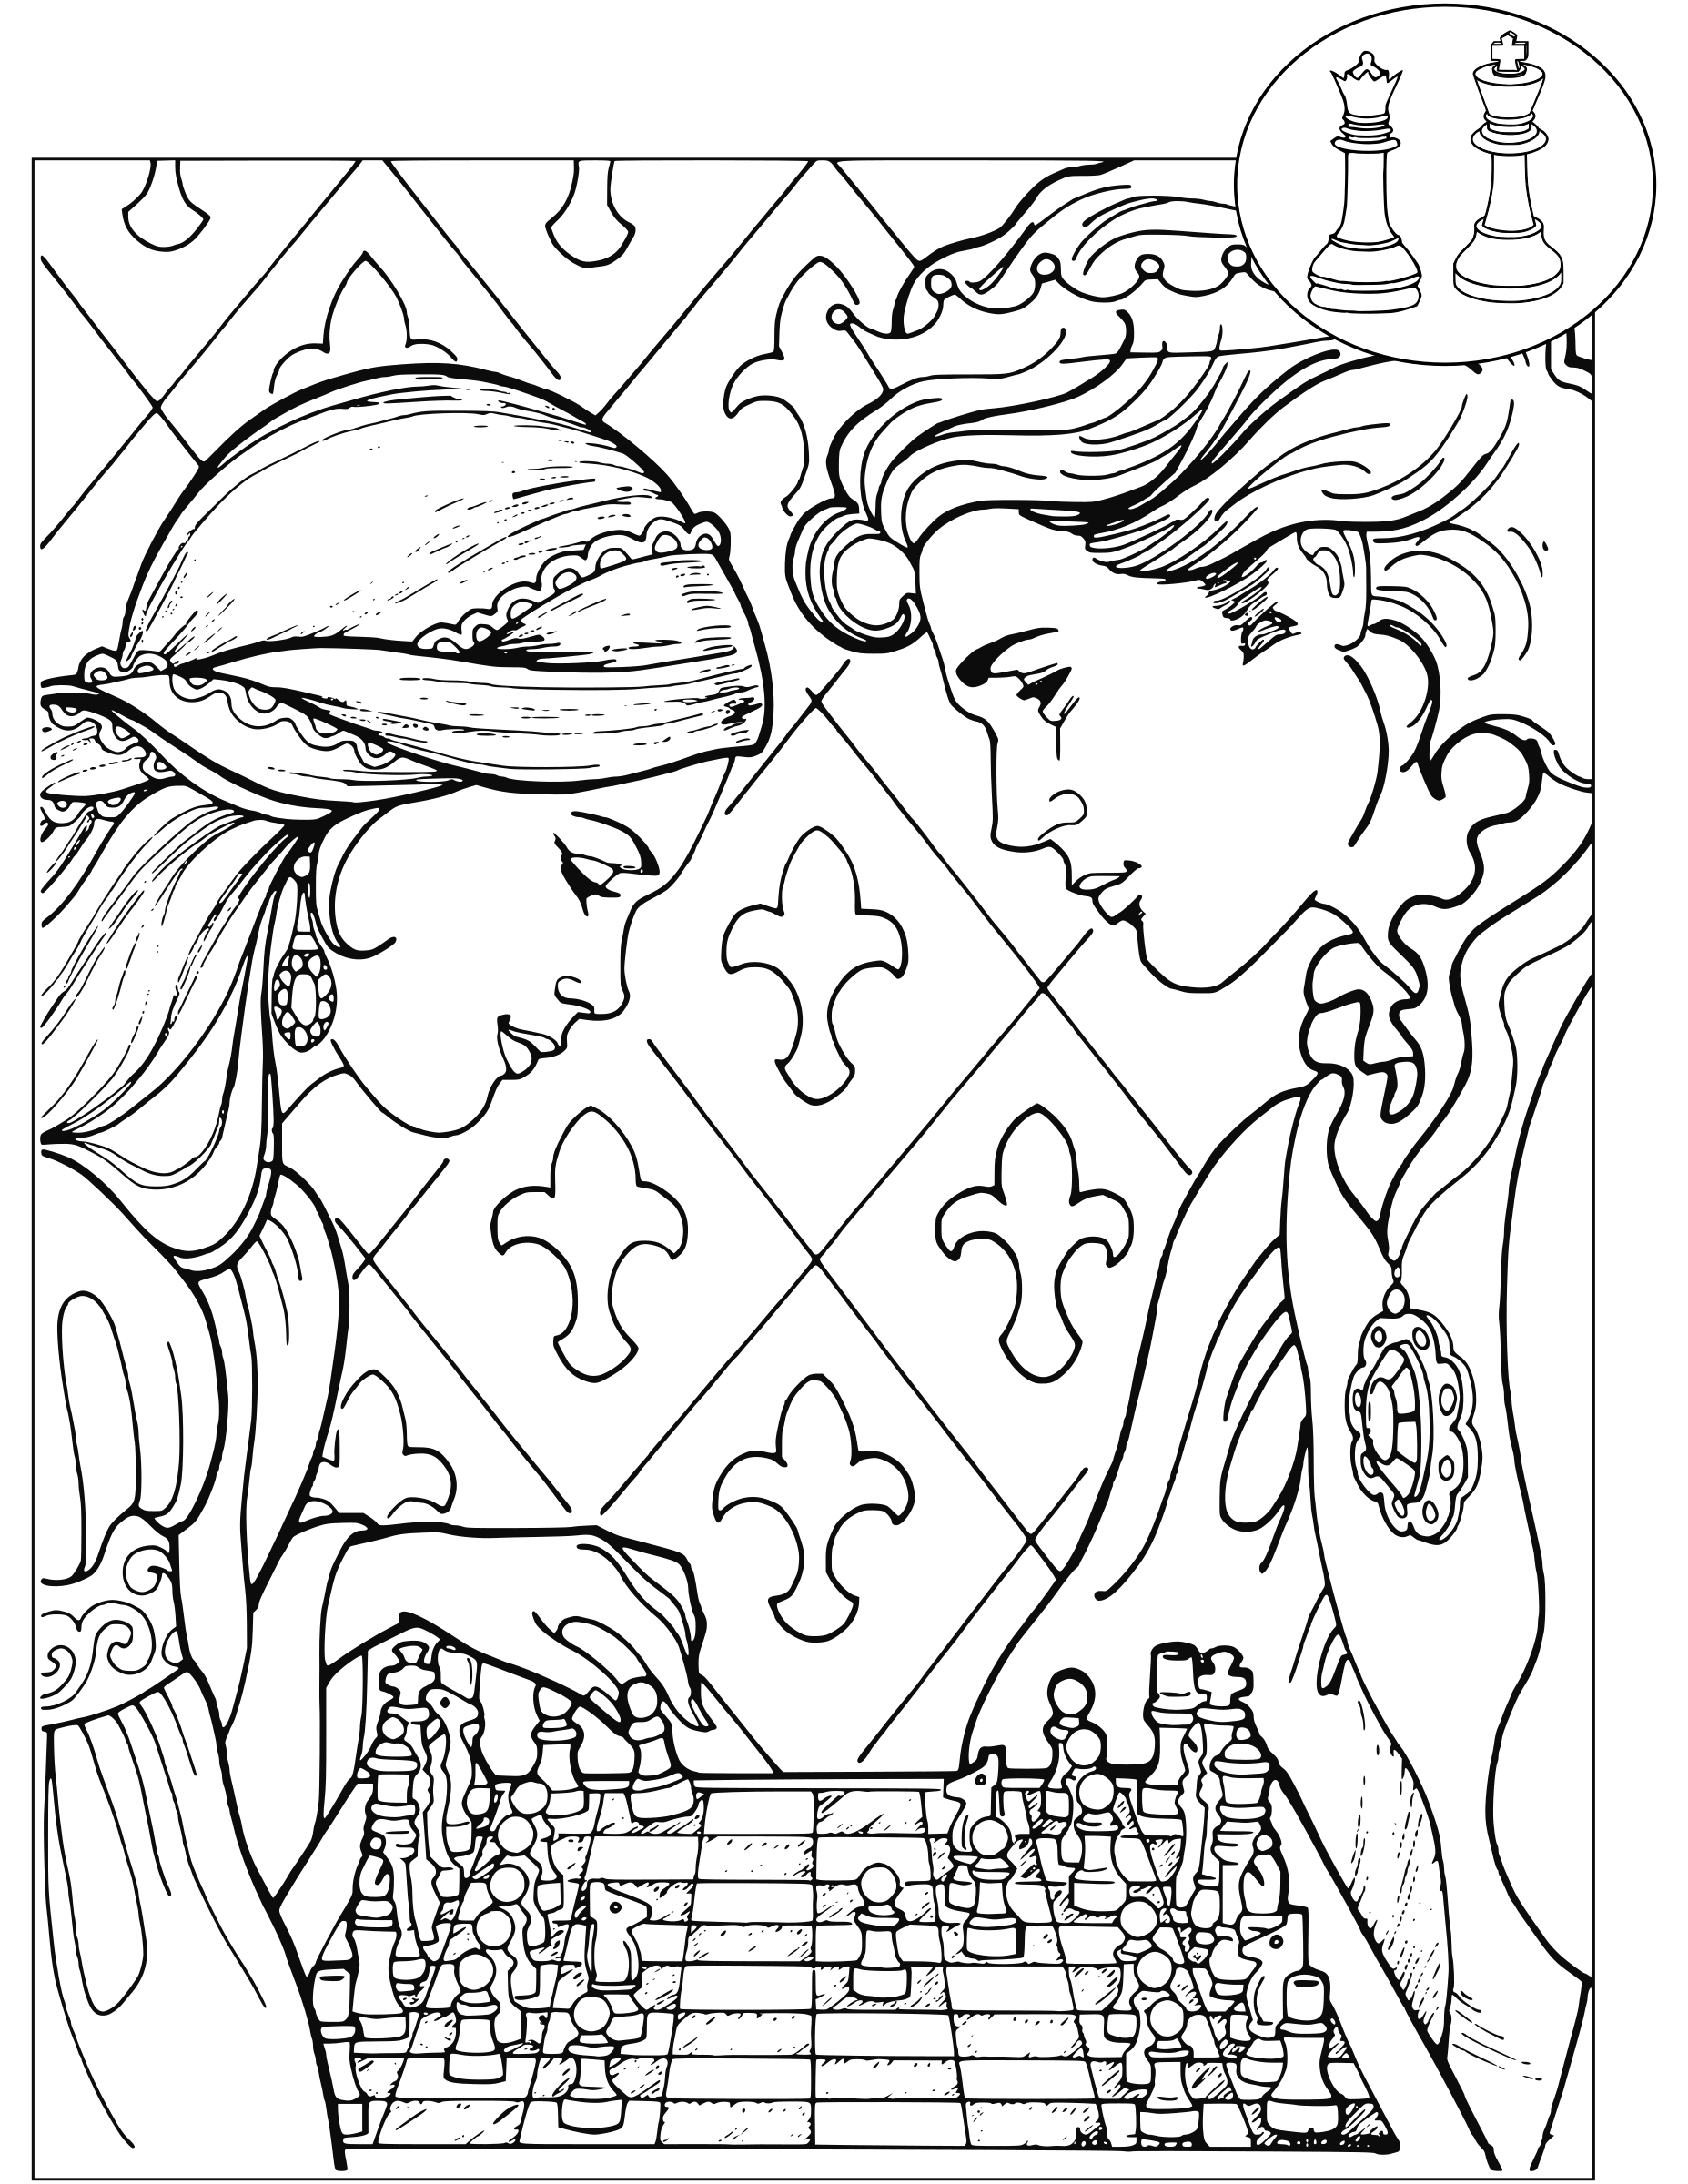 chess coloring pages downloads - photo#34